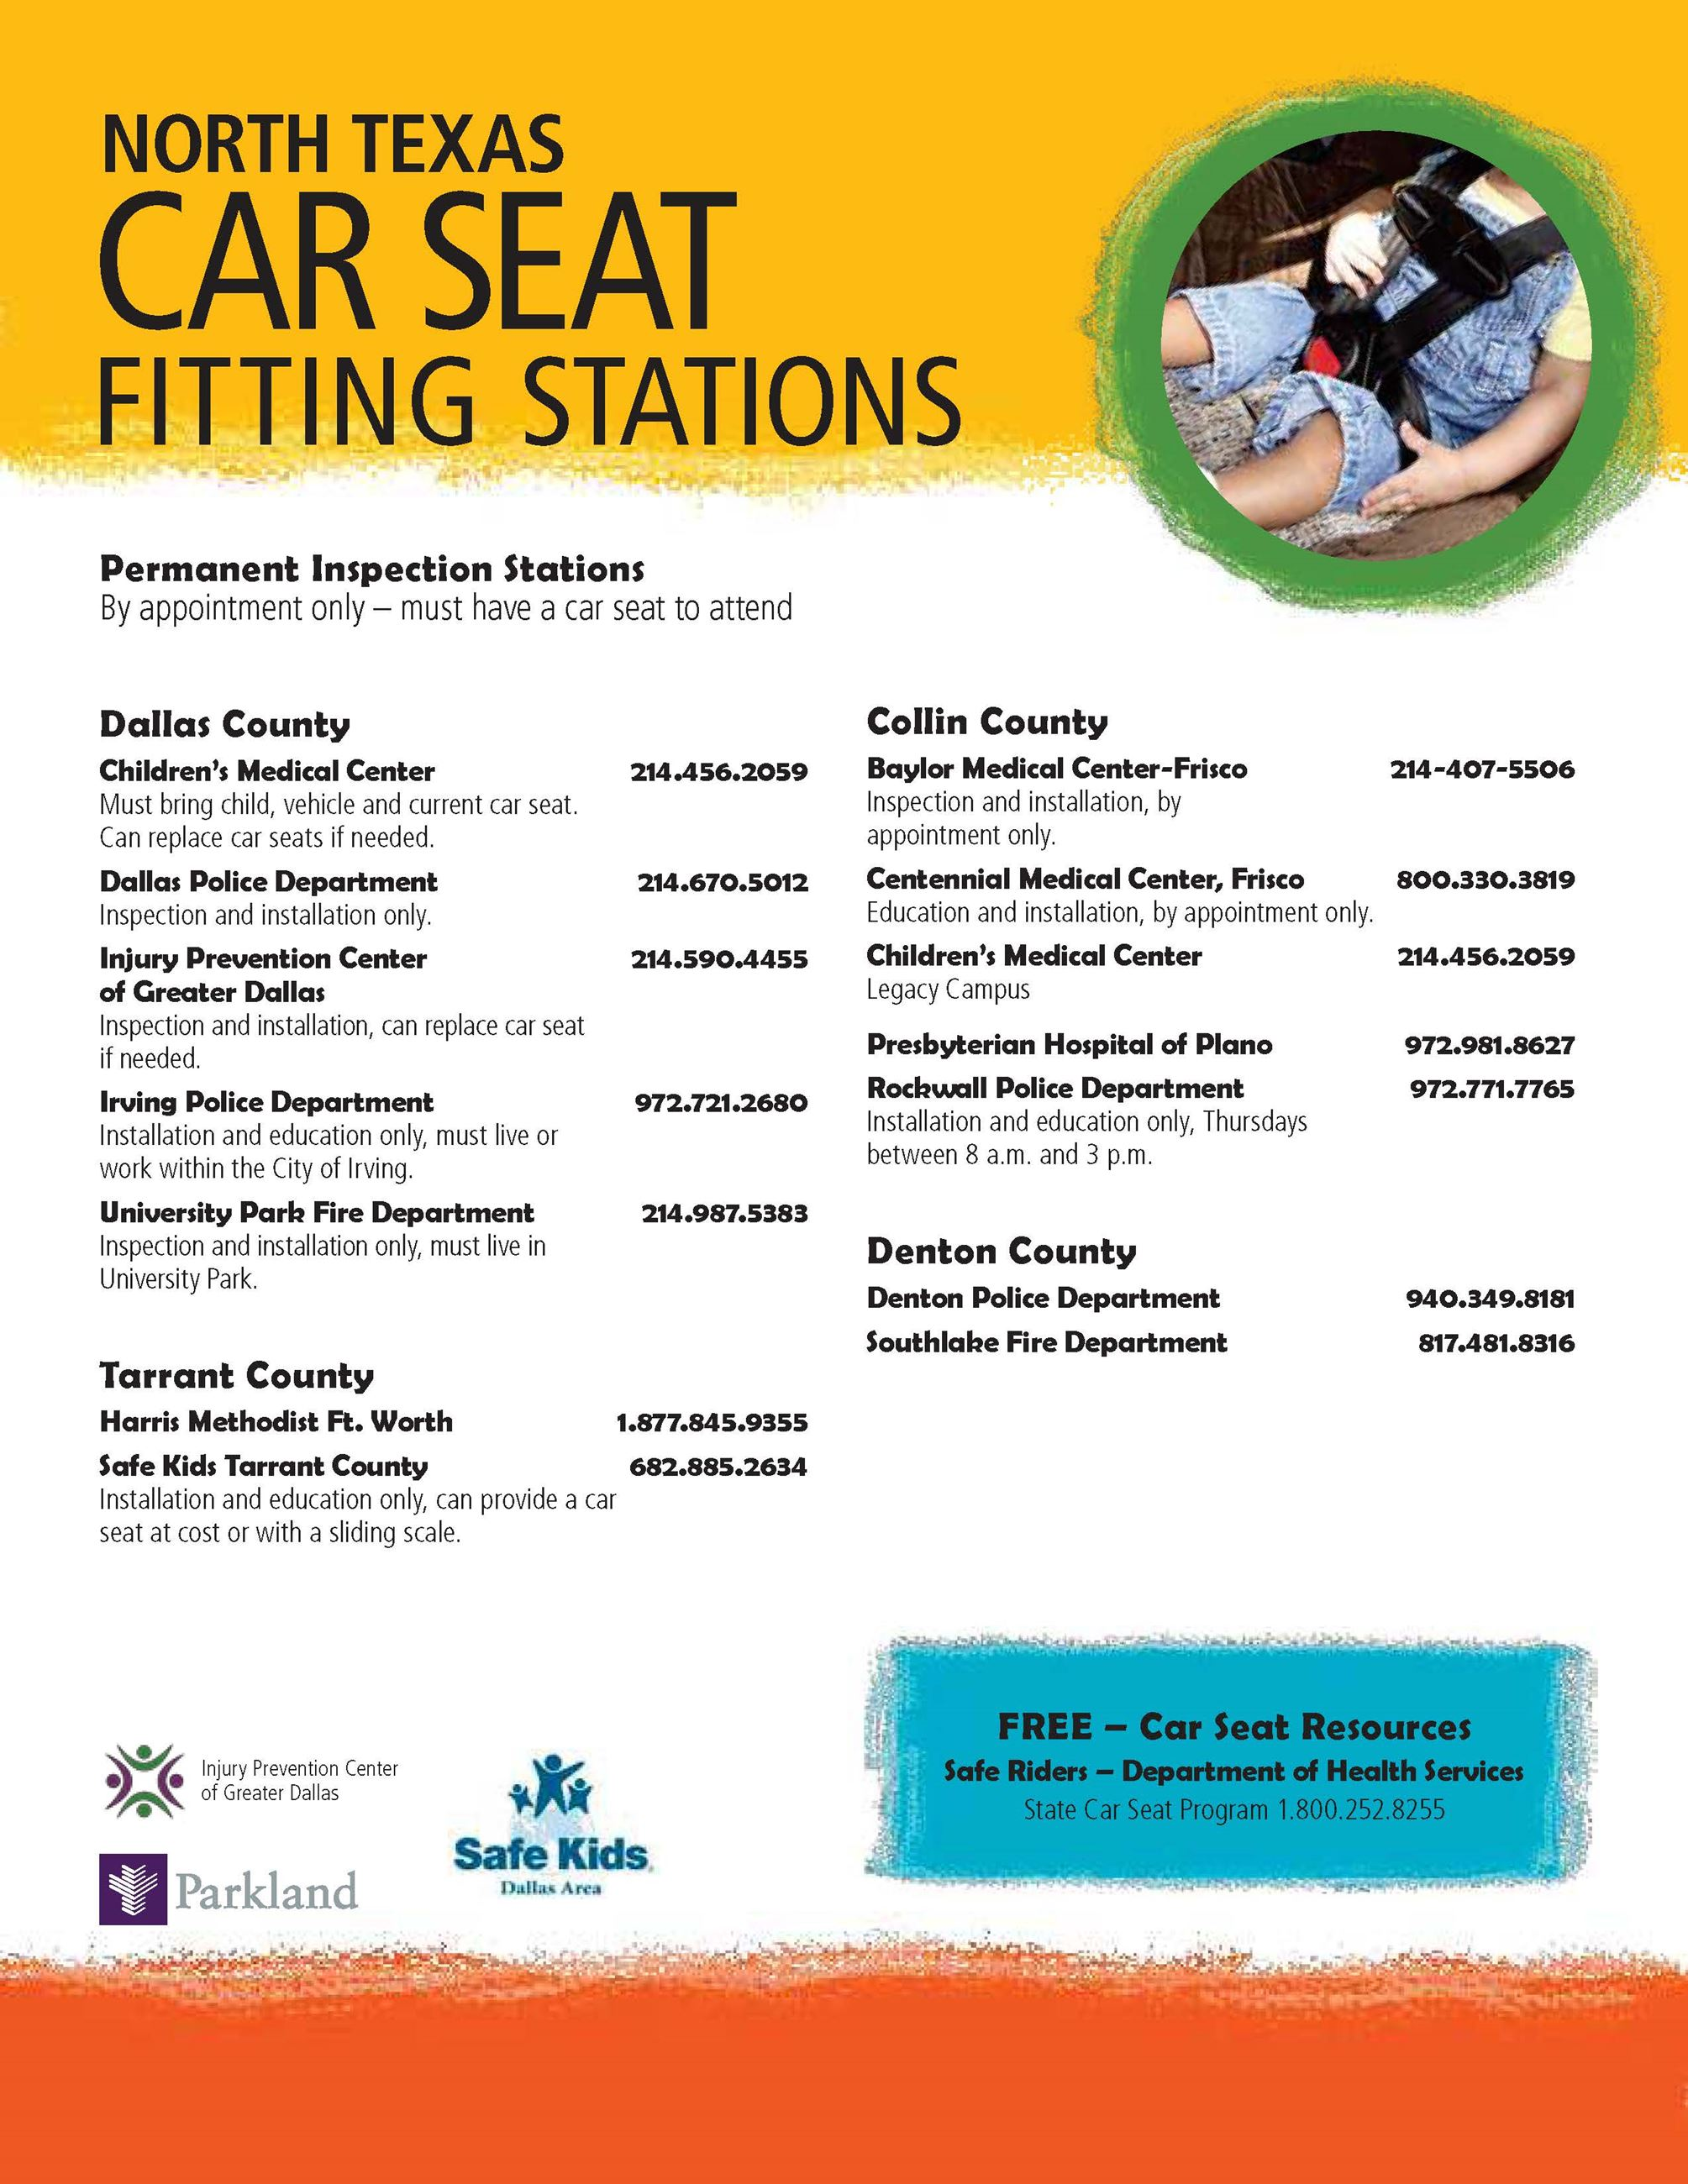 North Texas Fitting Stations